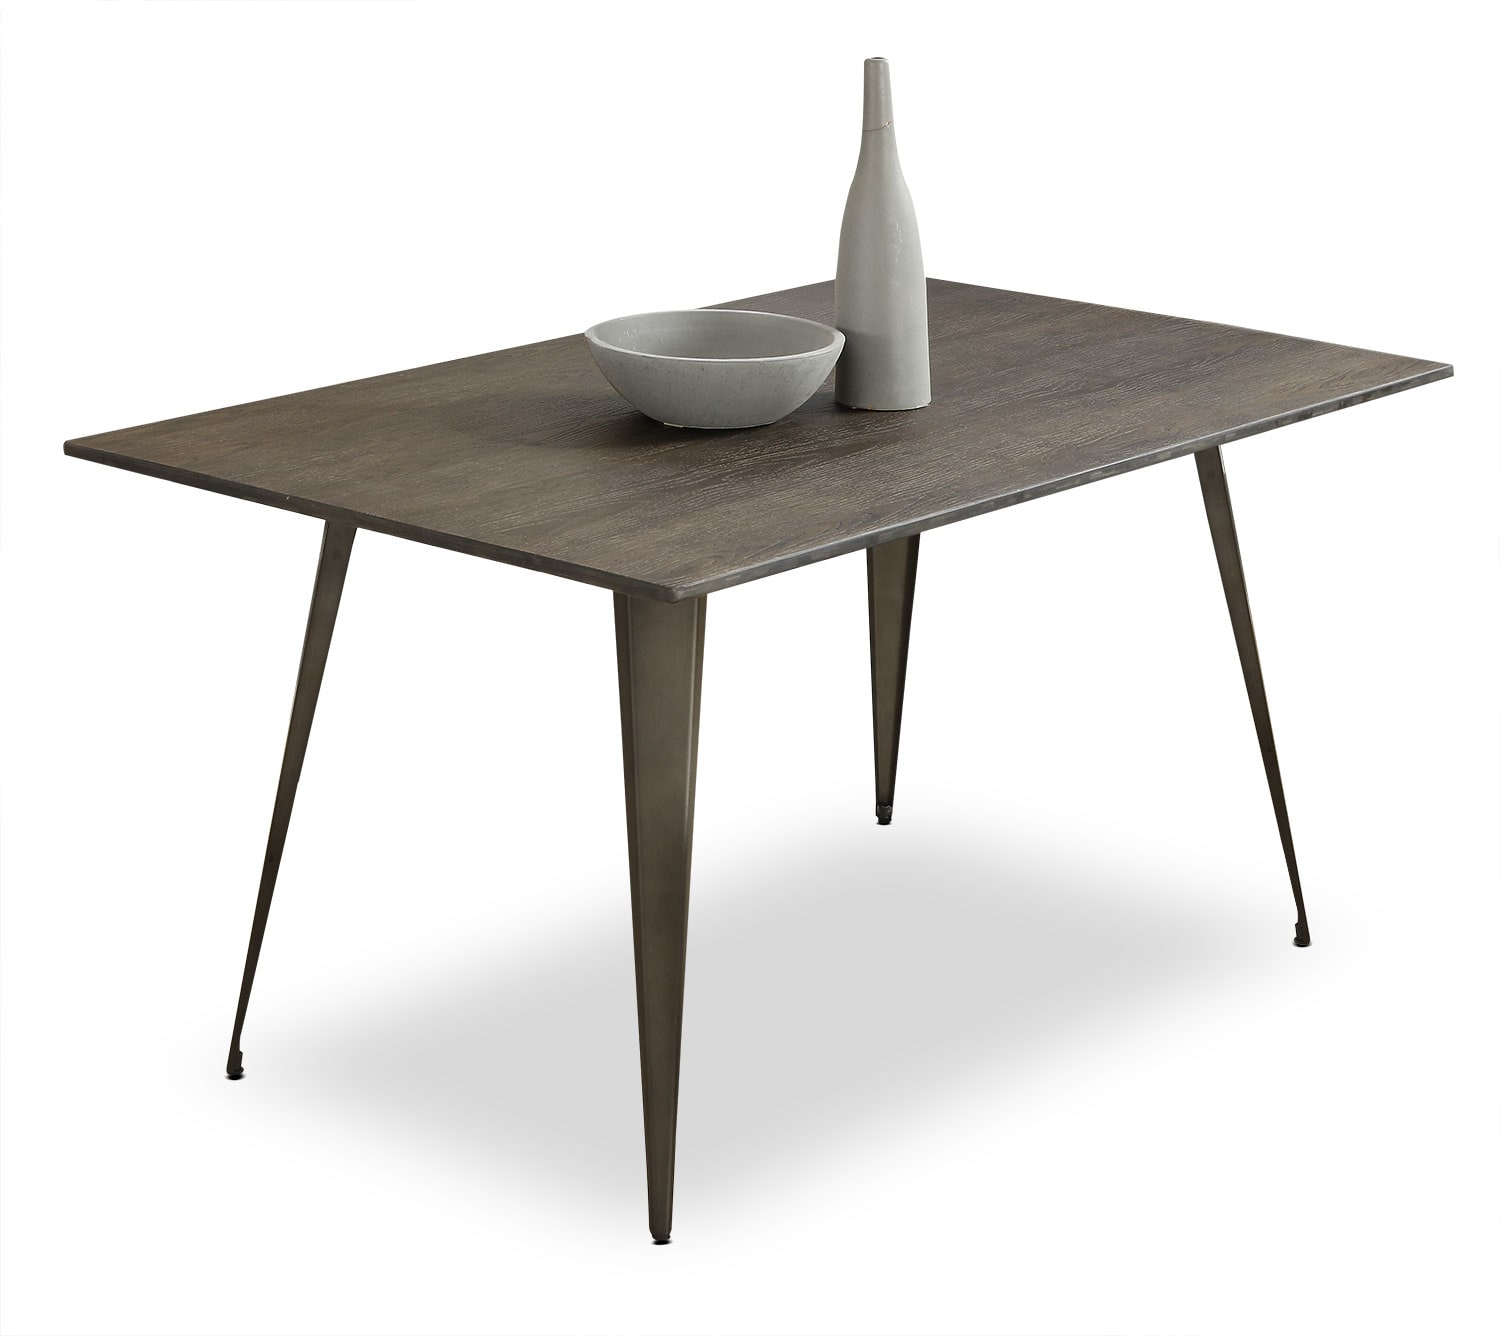 Dining Room Furniture - Monarch Café Dining Table